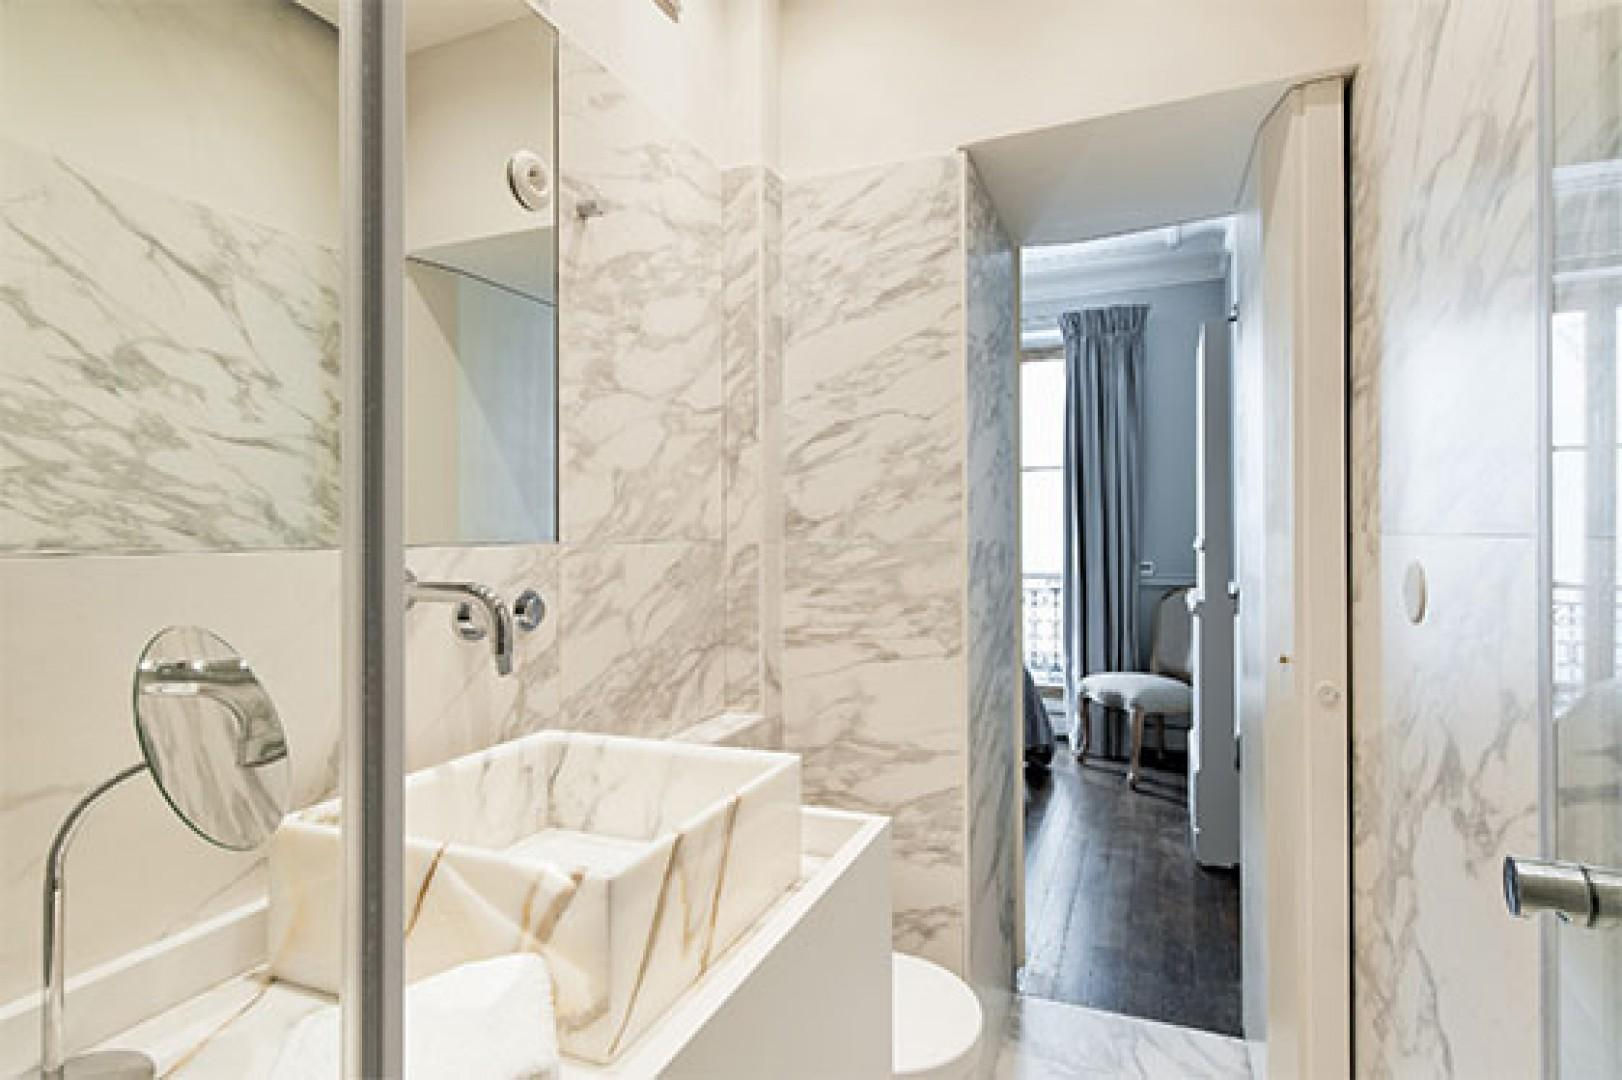 Pamper yourself in the luxurious marble bathroom.